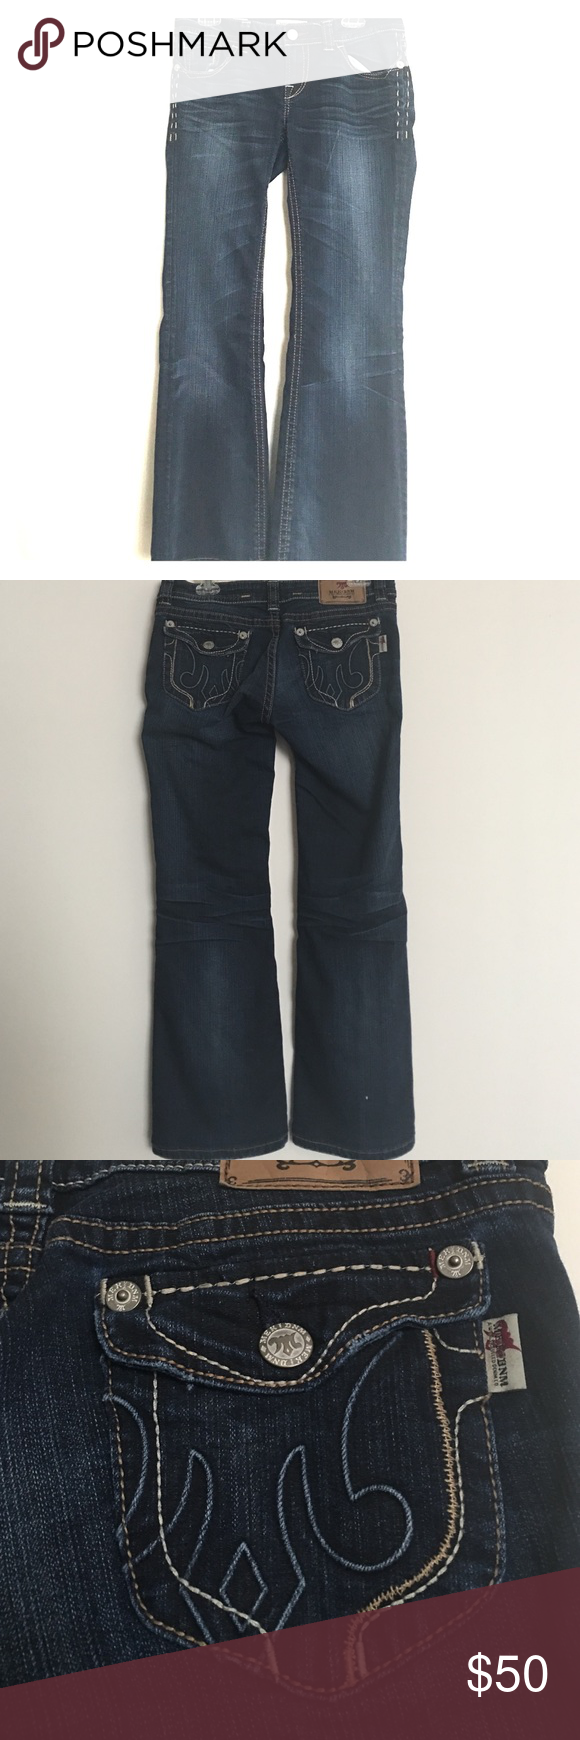 MEK Noida Bootcut Jeans Size 29 Love these stitched MEK bootcuts! A bit of sass and a bit of class, these are perfect to wear with heels or sneakers.  With a dark wash and button back pockets, these jeans are sure to wow! MEK Jeans Boot Cut